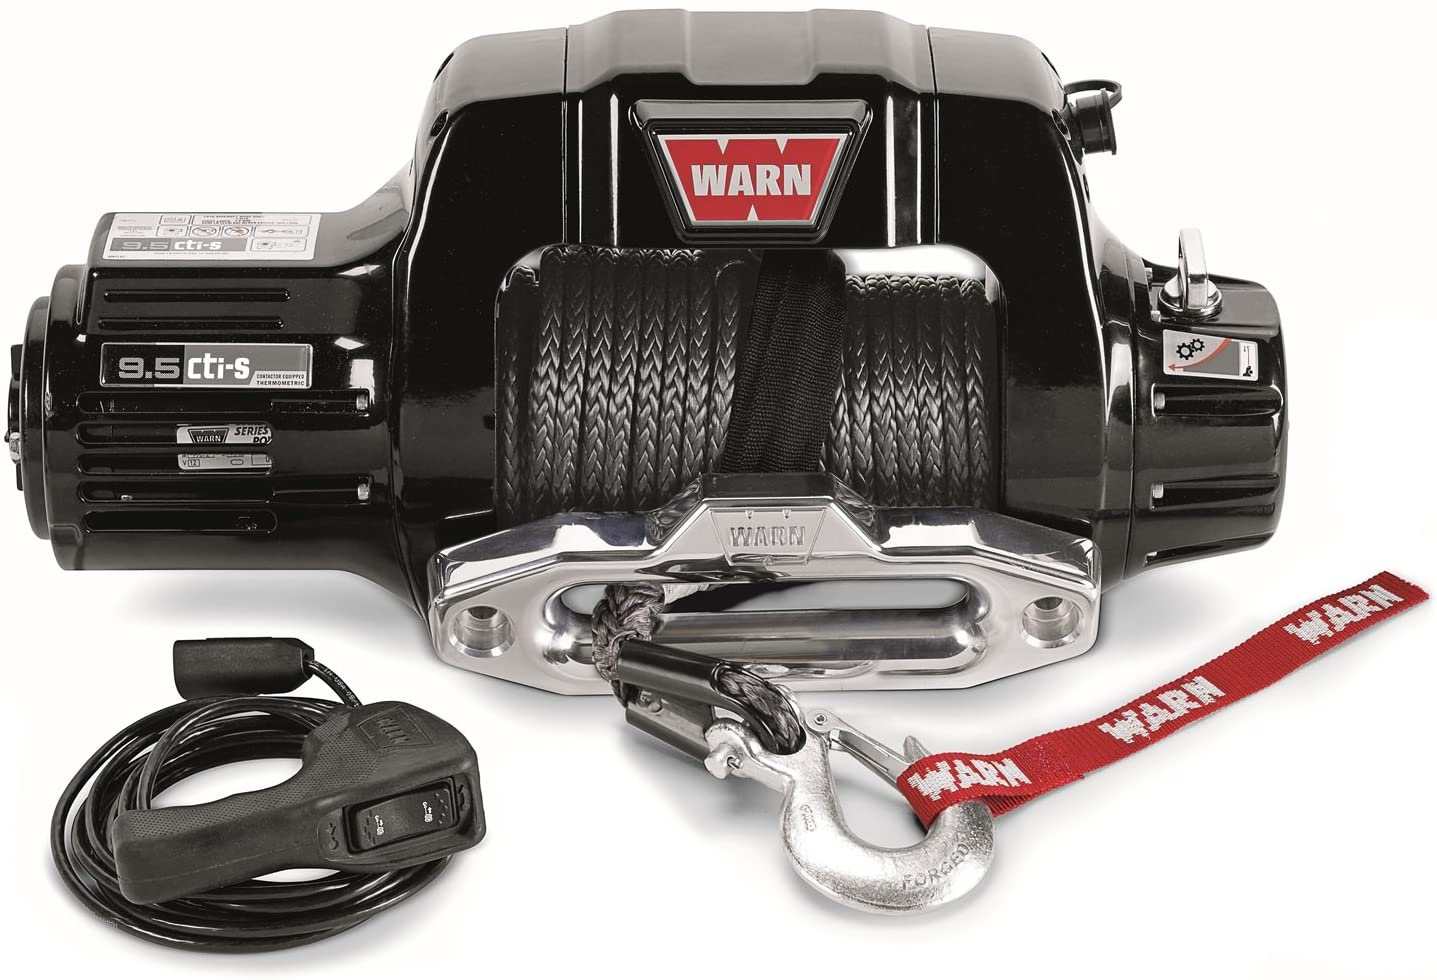 WARN 97600 9.5cti-s Electric 12V Winch with Synthetic Cable Rope: 3/8